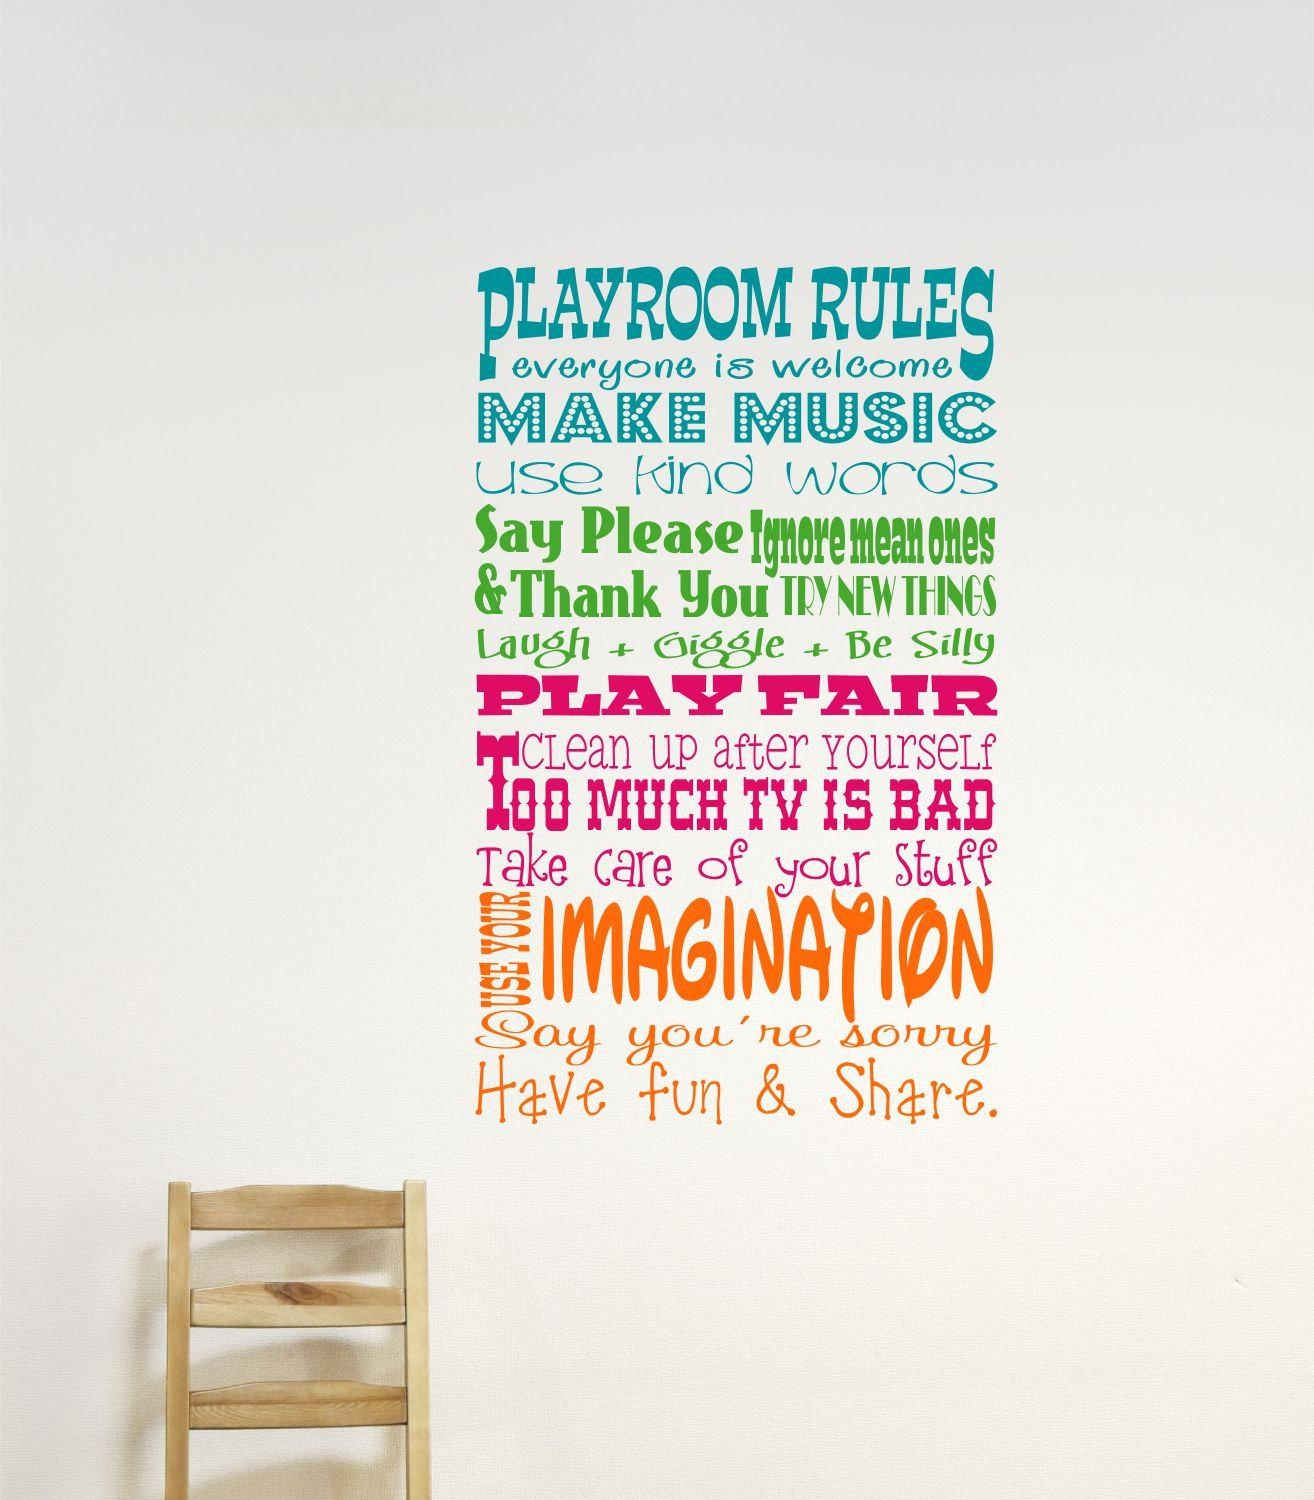 Childrens Wall Decor // Playroom Rules Wall Decal // Childrens Within Playroom Rules Wall Art (View 1 of 20)